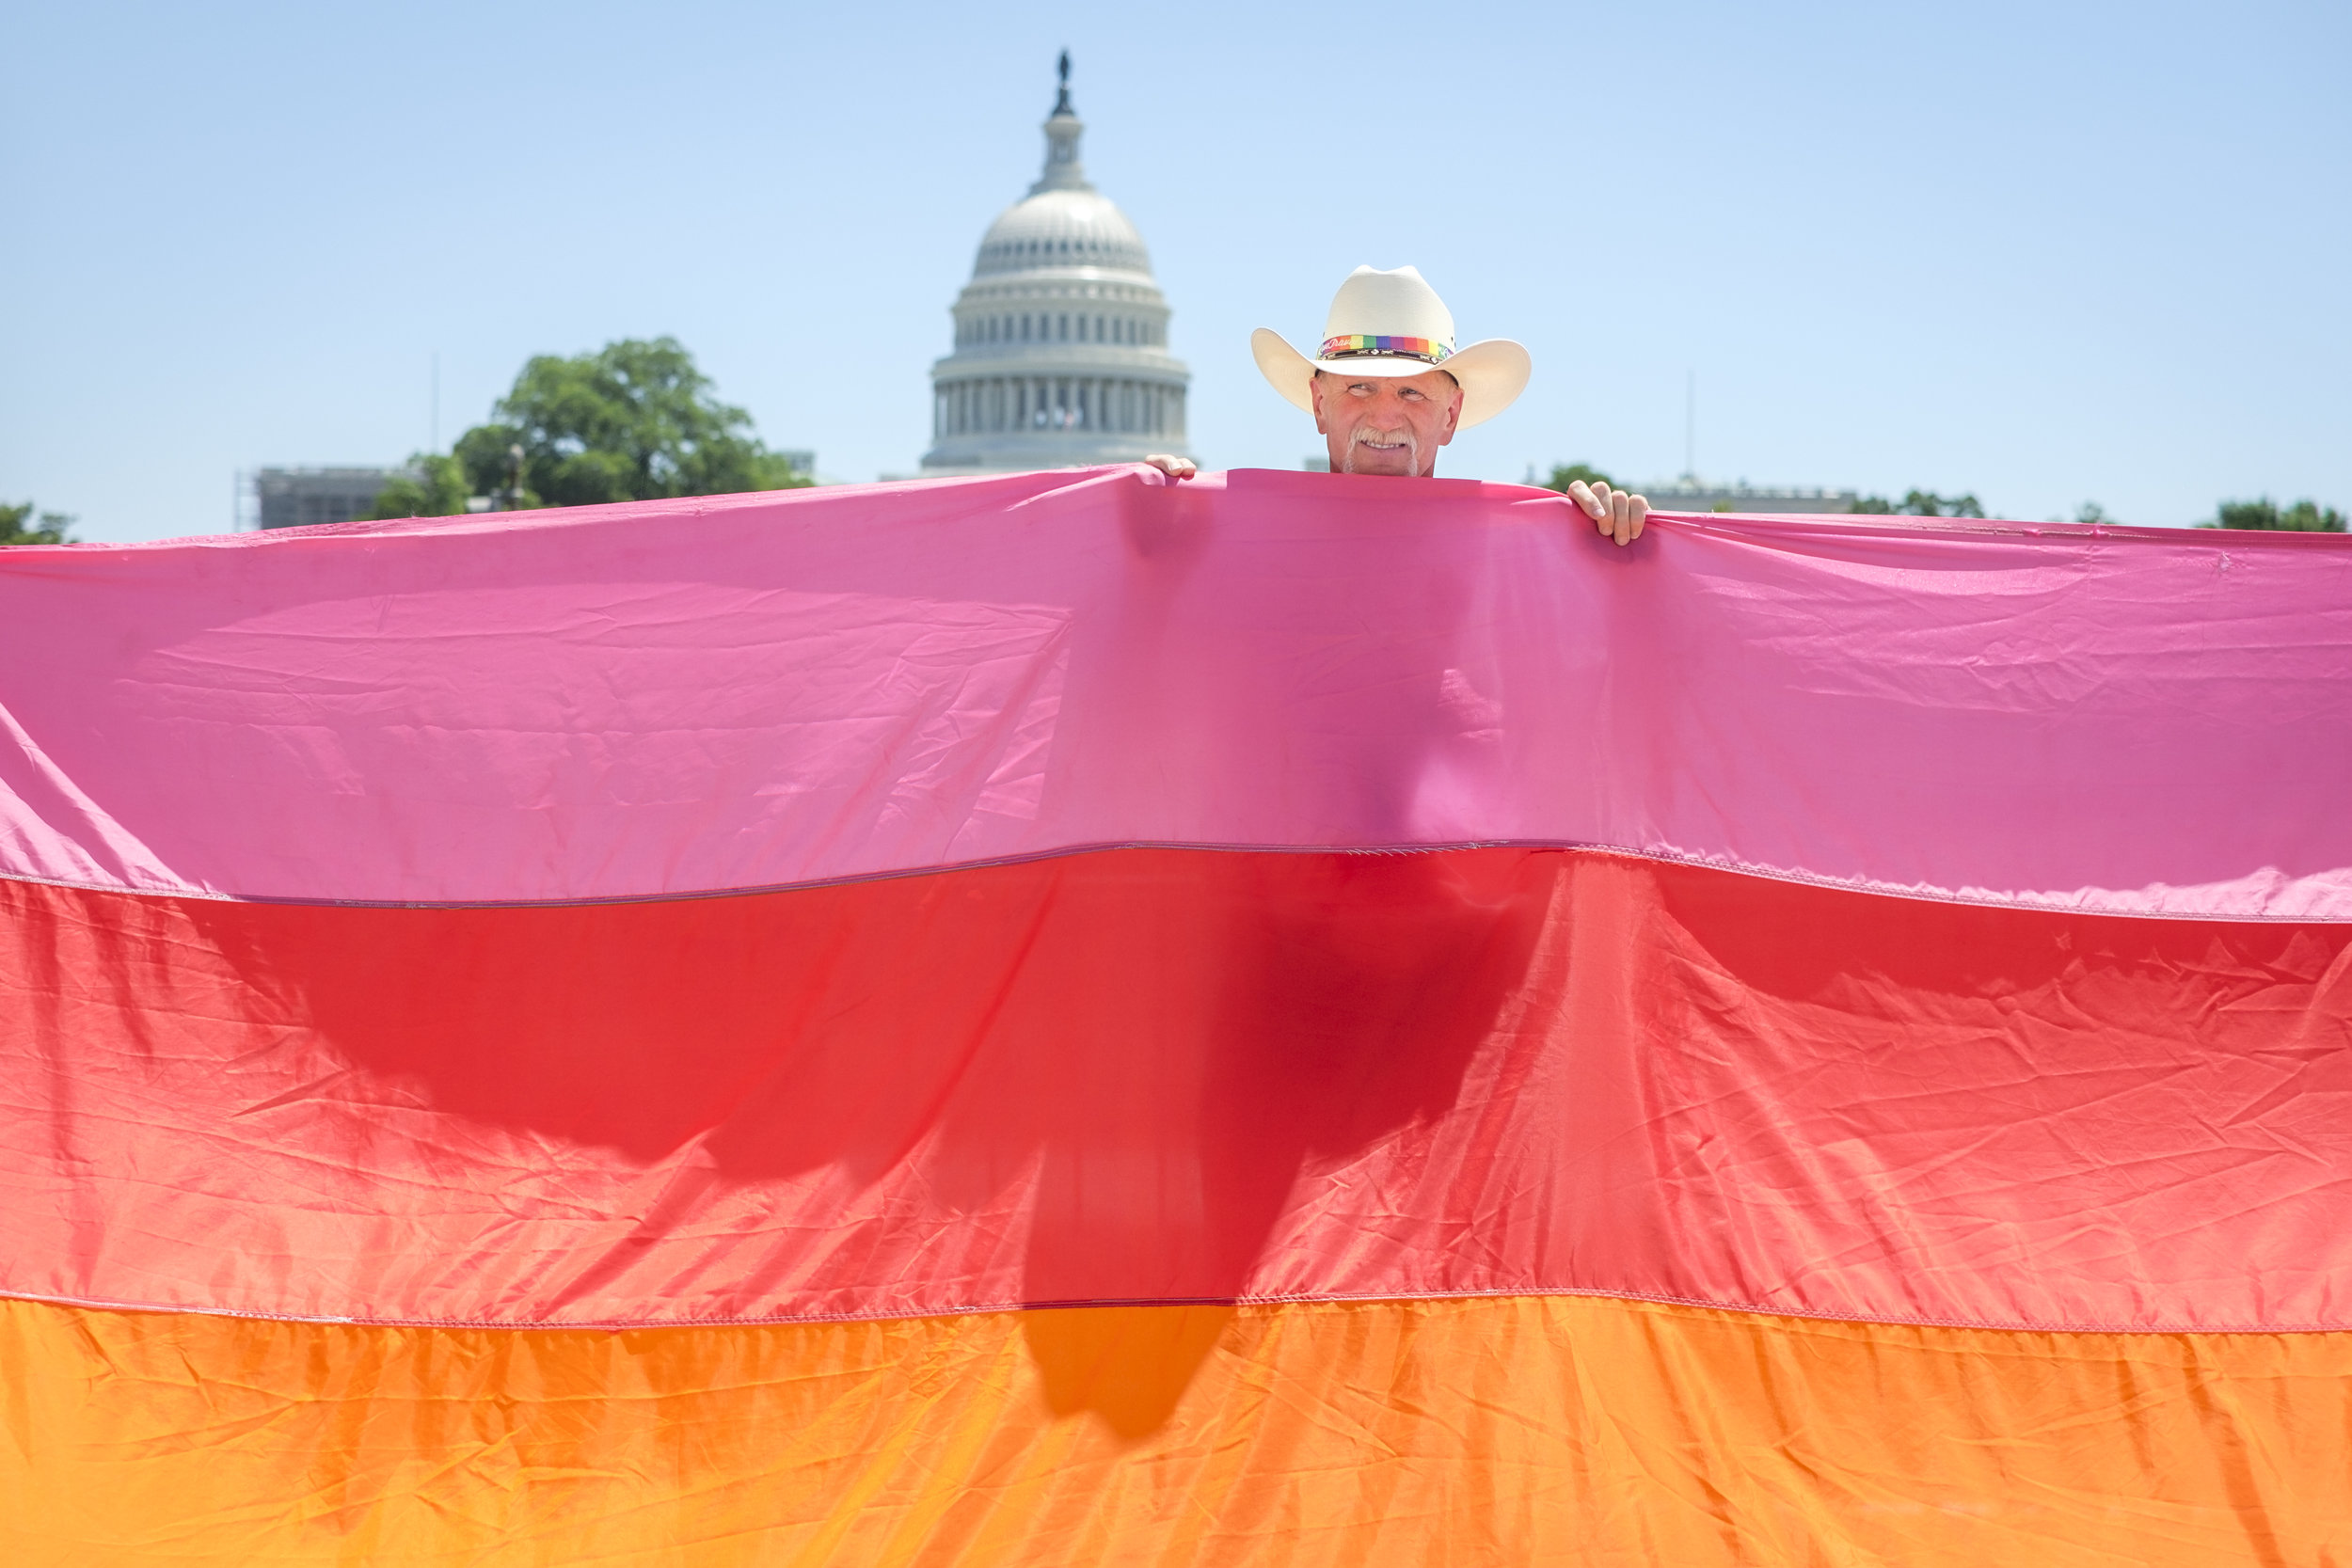 """Wes Givens of Plumerville, AR is seen holding up part of a large Rainbow Flag at the rally following the Equality March for Unity and Pride on Sunday, June 11, 2017 in Washington, DC. After the flag was folded Wes walked up to me and shared the following, """"I was a plaintiff from Arkansas. I was on the the Supreme Court steps the day of the hearing. And on the steps the day of the ruling."""" He is referring to the Supreme Court ruling of Obergefell v. Hodges on marriage equality. When asked why he was there at the march and rally he said, """"Because equality. I was actually the first plaintiff to get a divorce. And so I'm talking for don't stay in an abusive marriage. If you have trouble, even though you're gay, you can start over. I'm 55 and my husband ran off with a man 15 years younger, and I thought my world was over. And I turned it around!"""" Wes also shared that he's a certified cowboy. The Equality March for Unity & Pride is a grassroots movement which seeks to mobilize the diverse LGBTQ+ communities to peacefully and clearly address concerns about the current political landscapes and how it is contributing to the persecution and discrimination of LGBTQ+ individuals."""